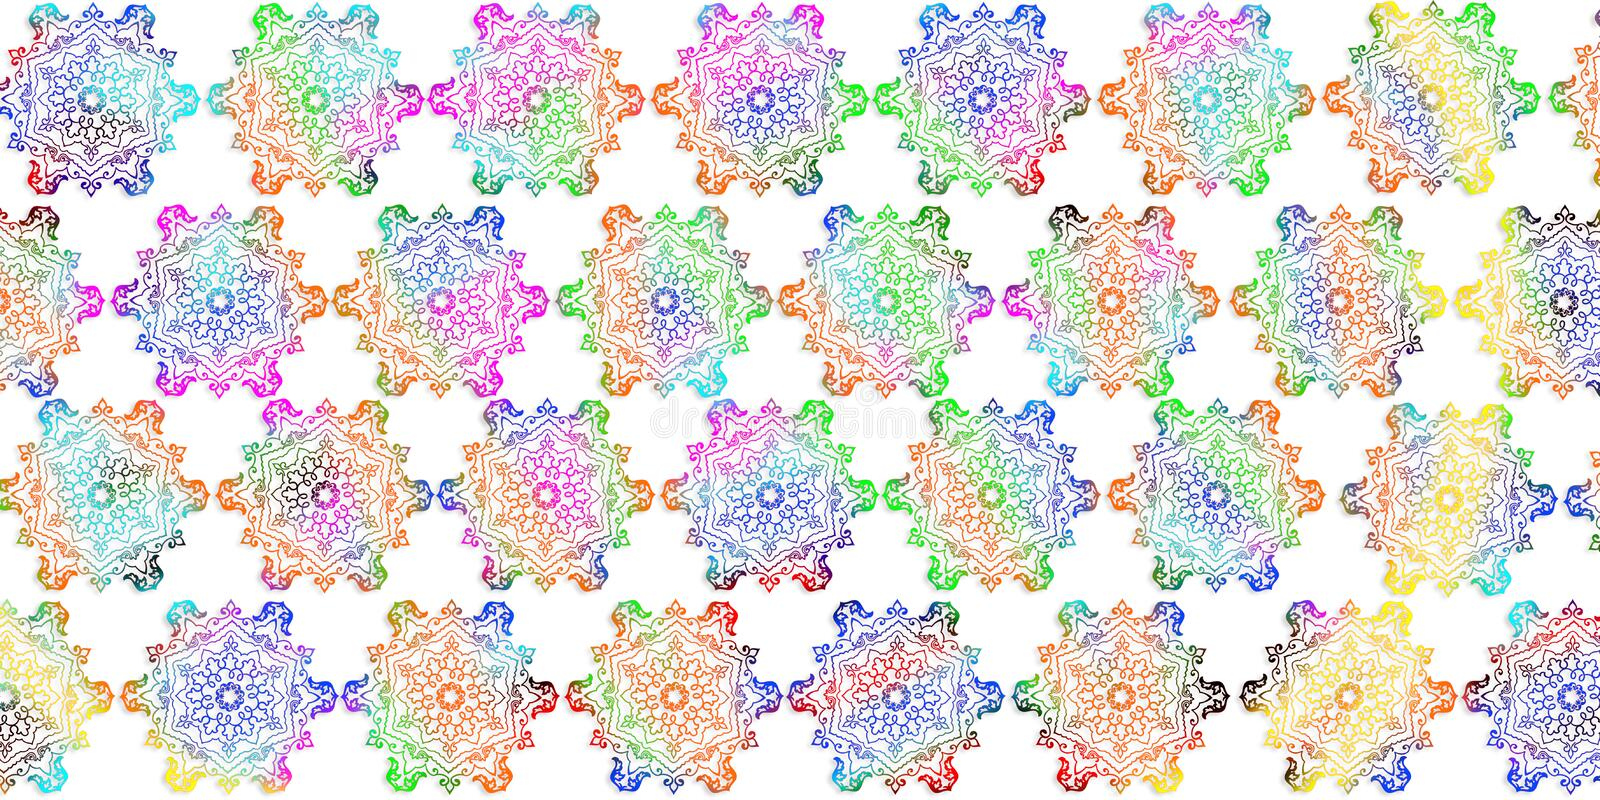 Multicolor digital wall tile decor for interior ho me,tile design,wall art, wallpaper, linoleum, webpage, background, illustration vector illustration